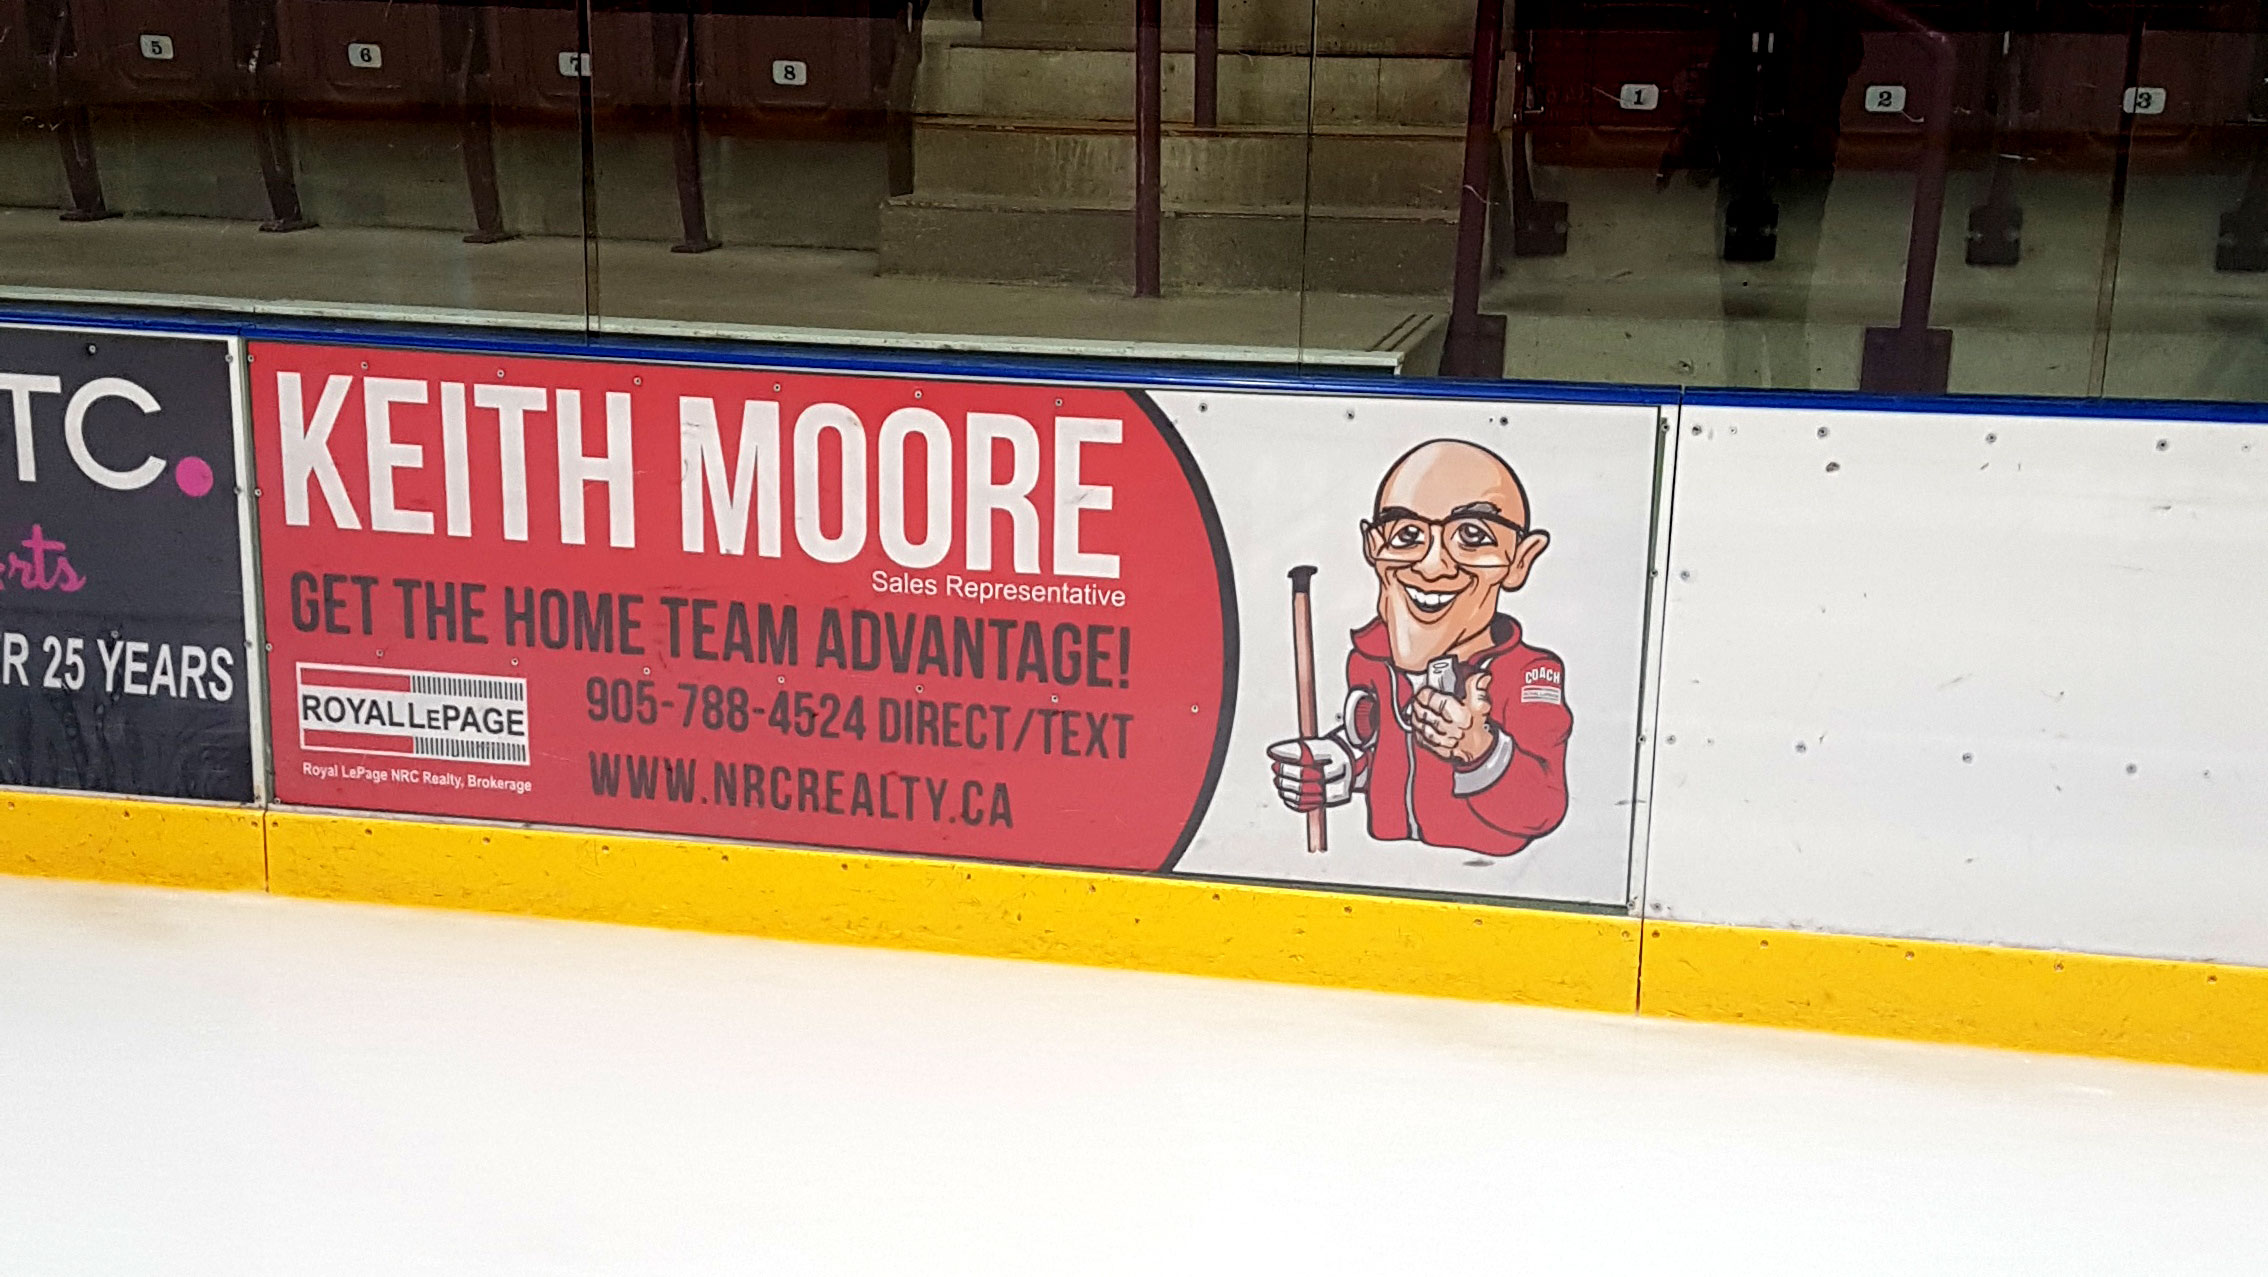 Royal LePage Illustration Testimonial from Keith Moore